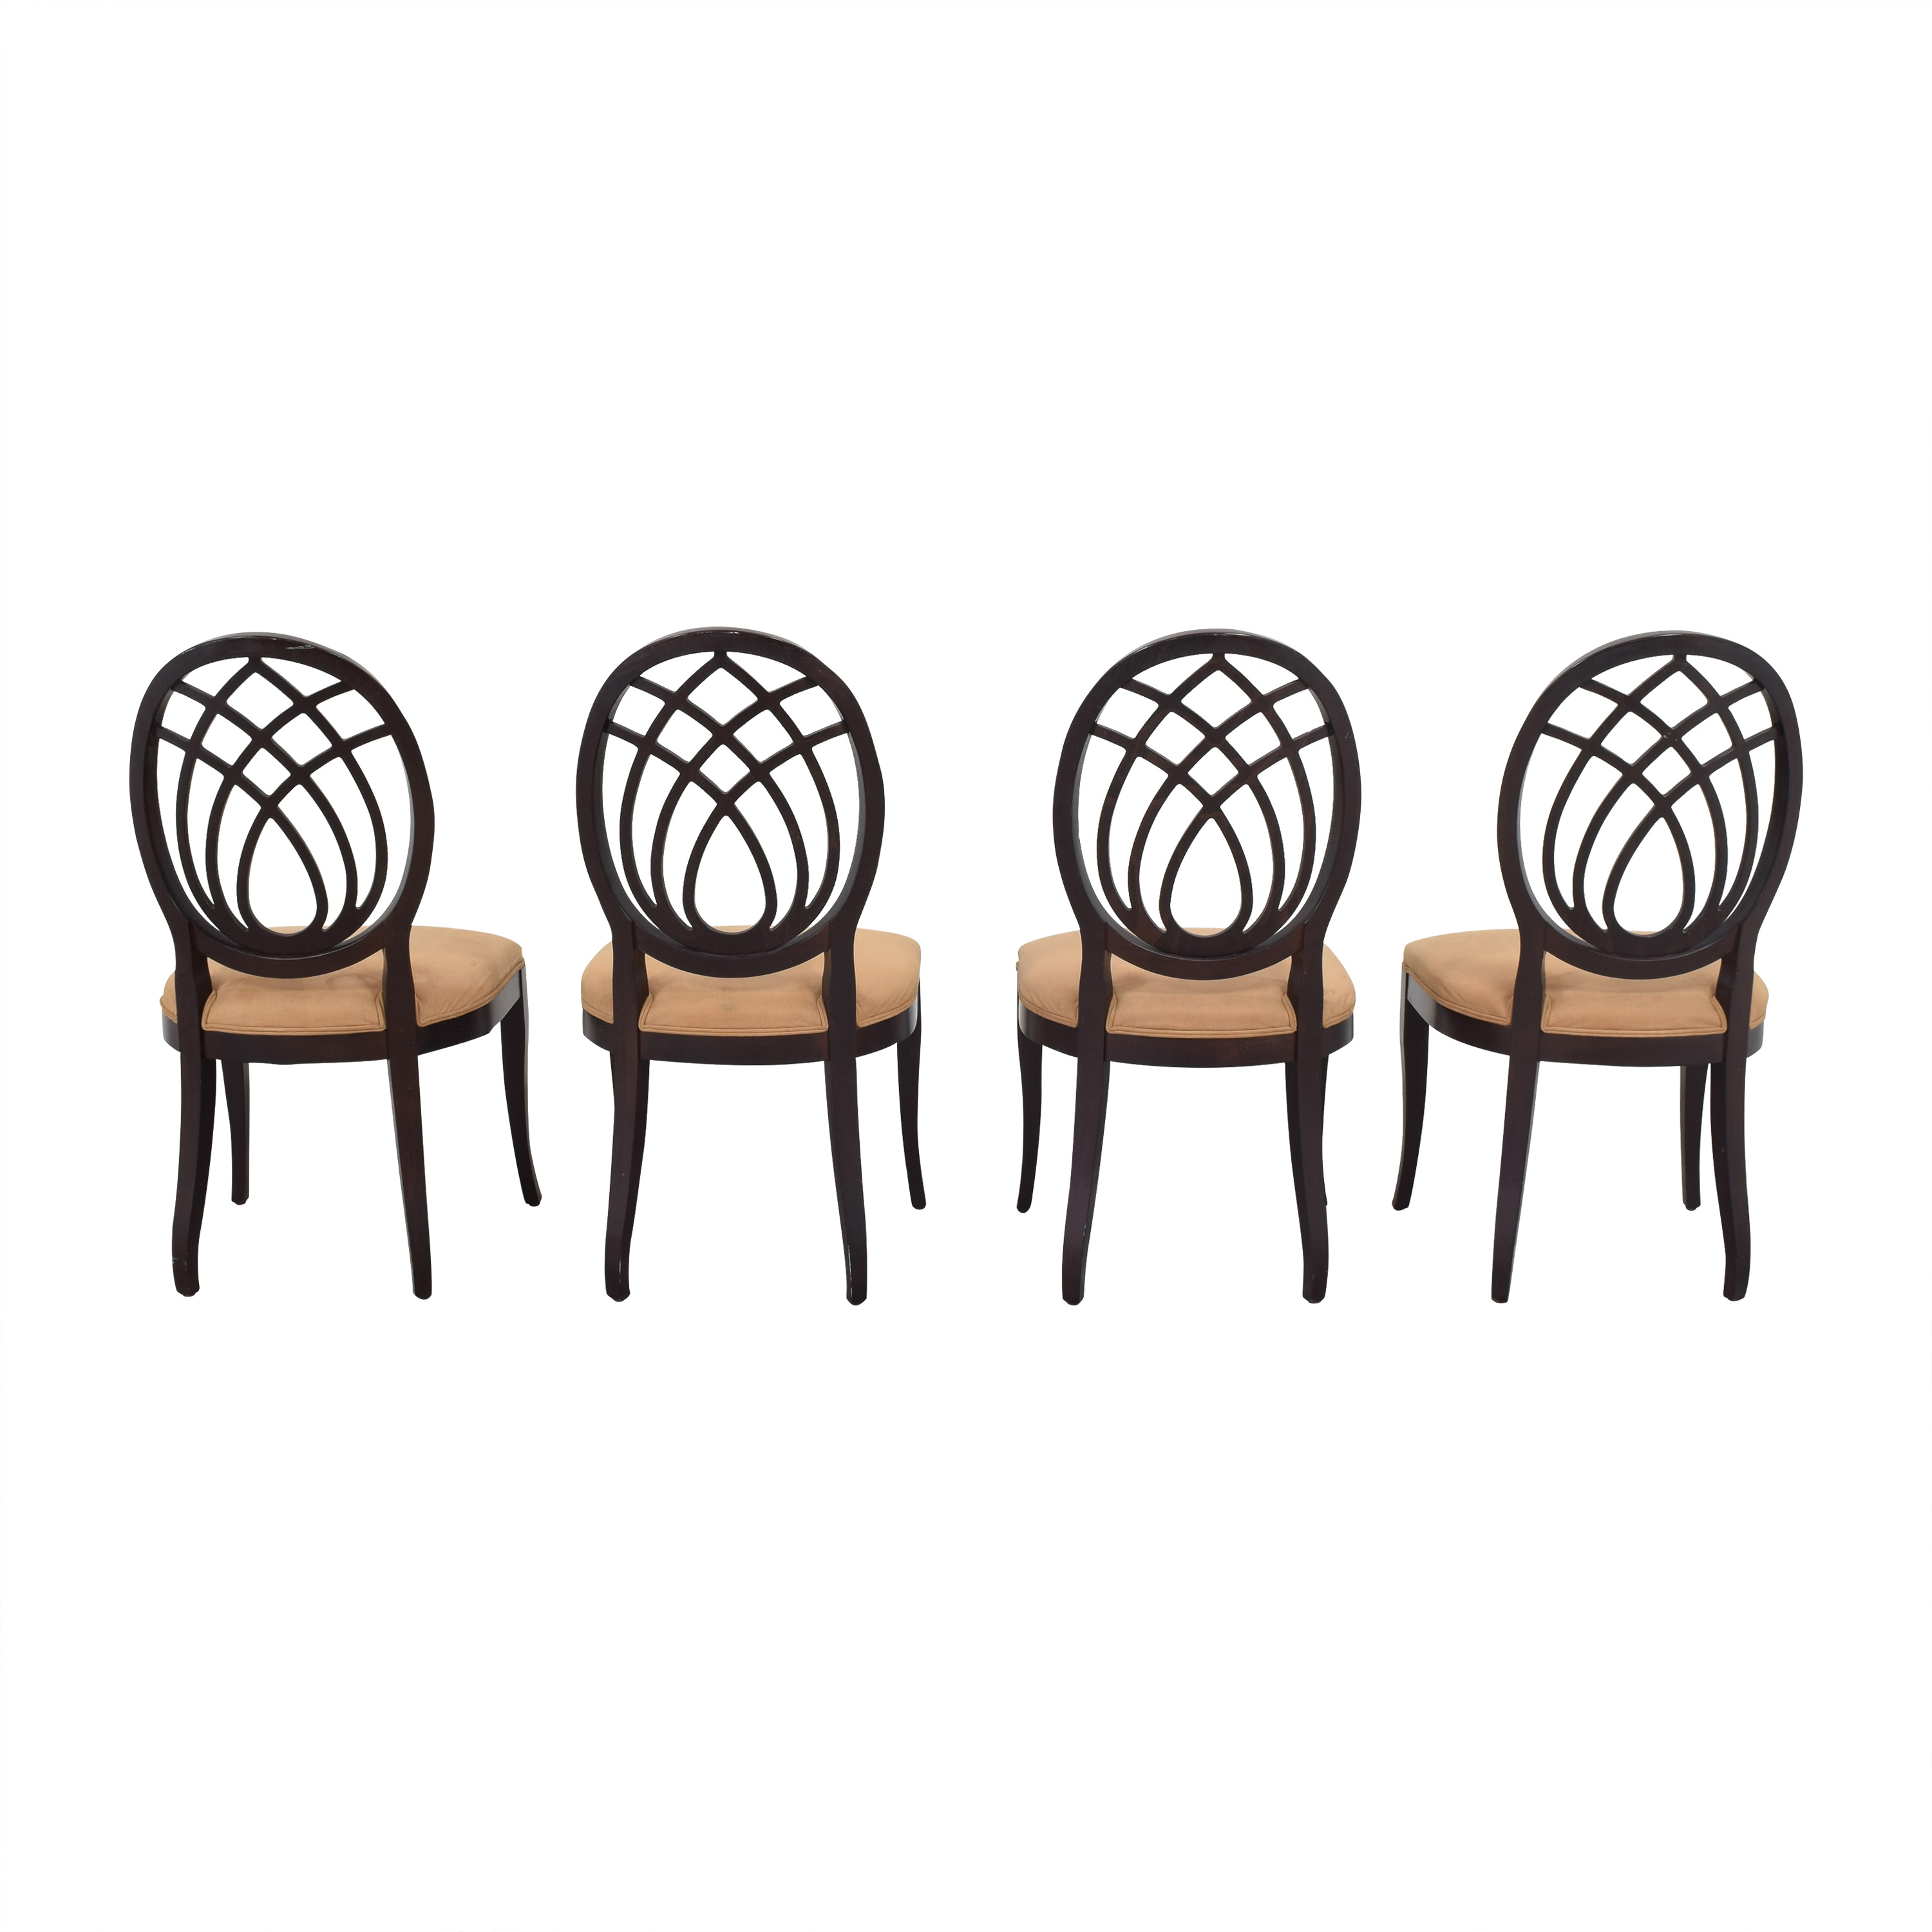 Bombay Company Bombay Company Oval Back Dining Side Chairs coupon